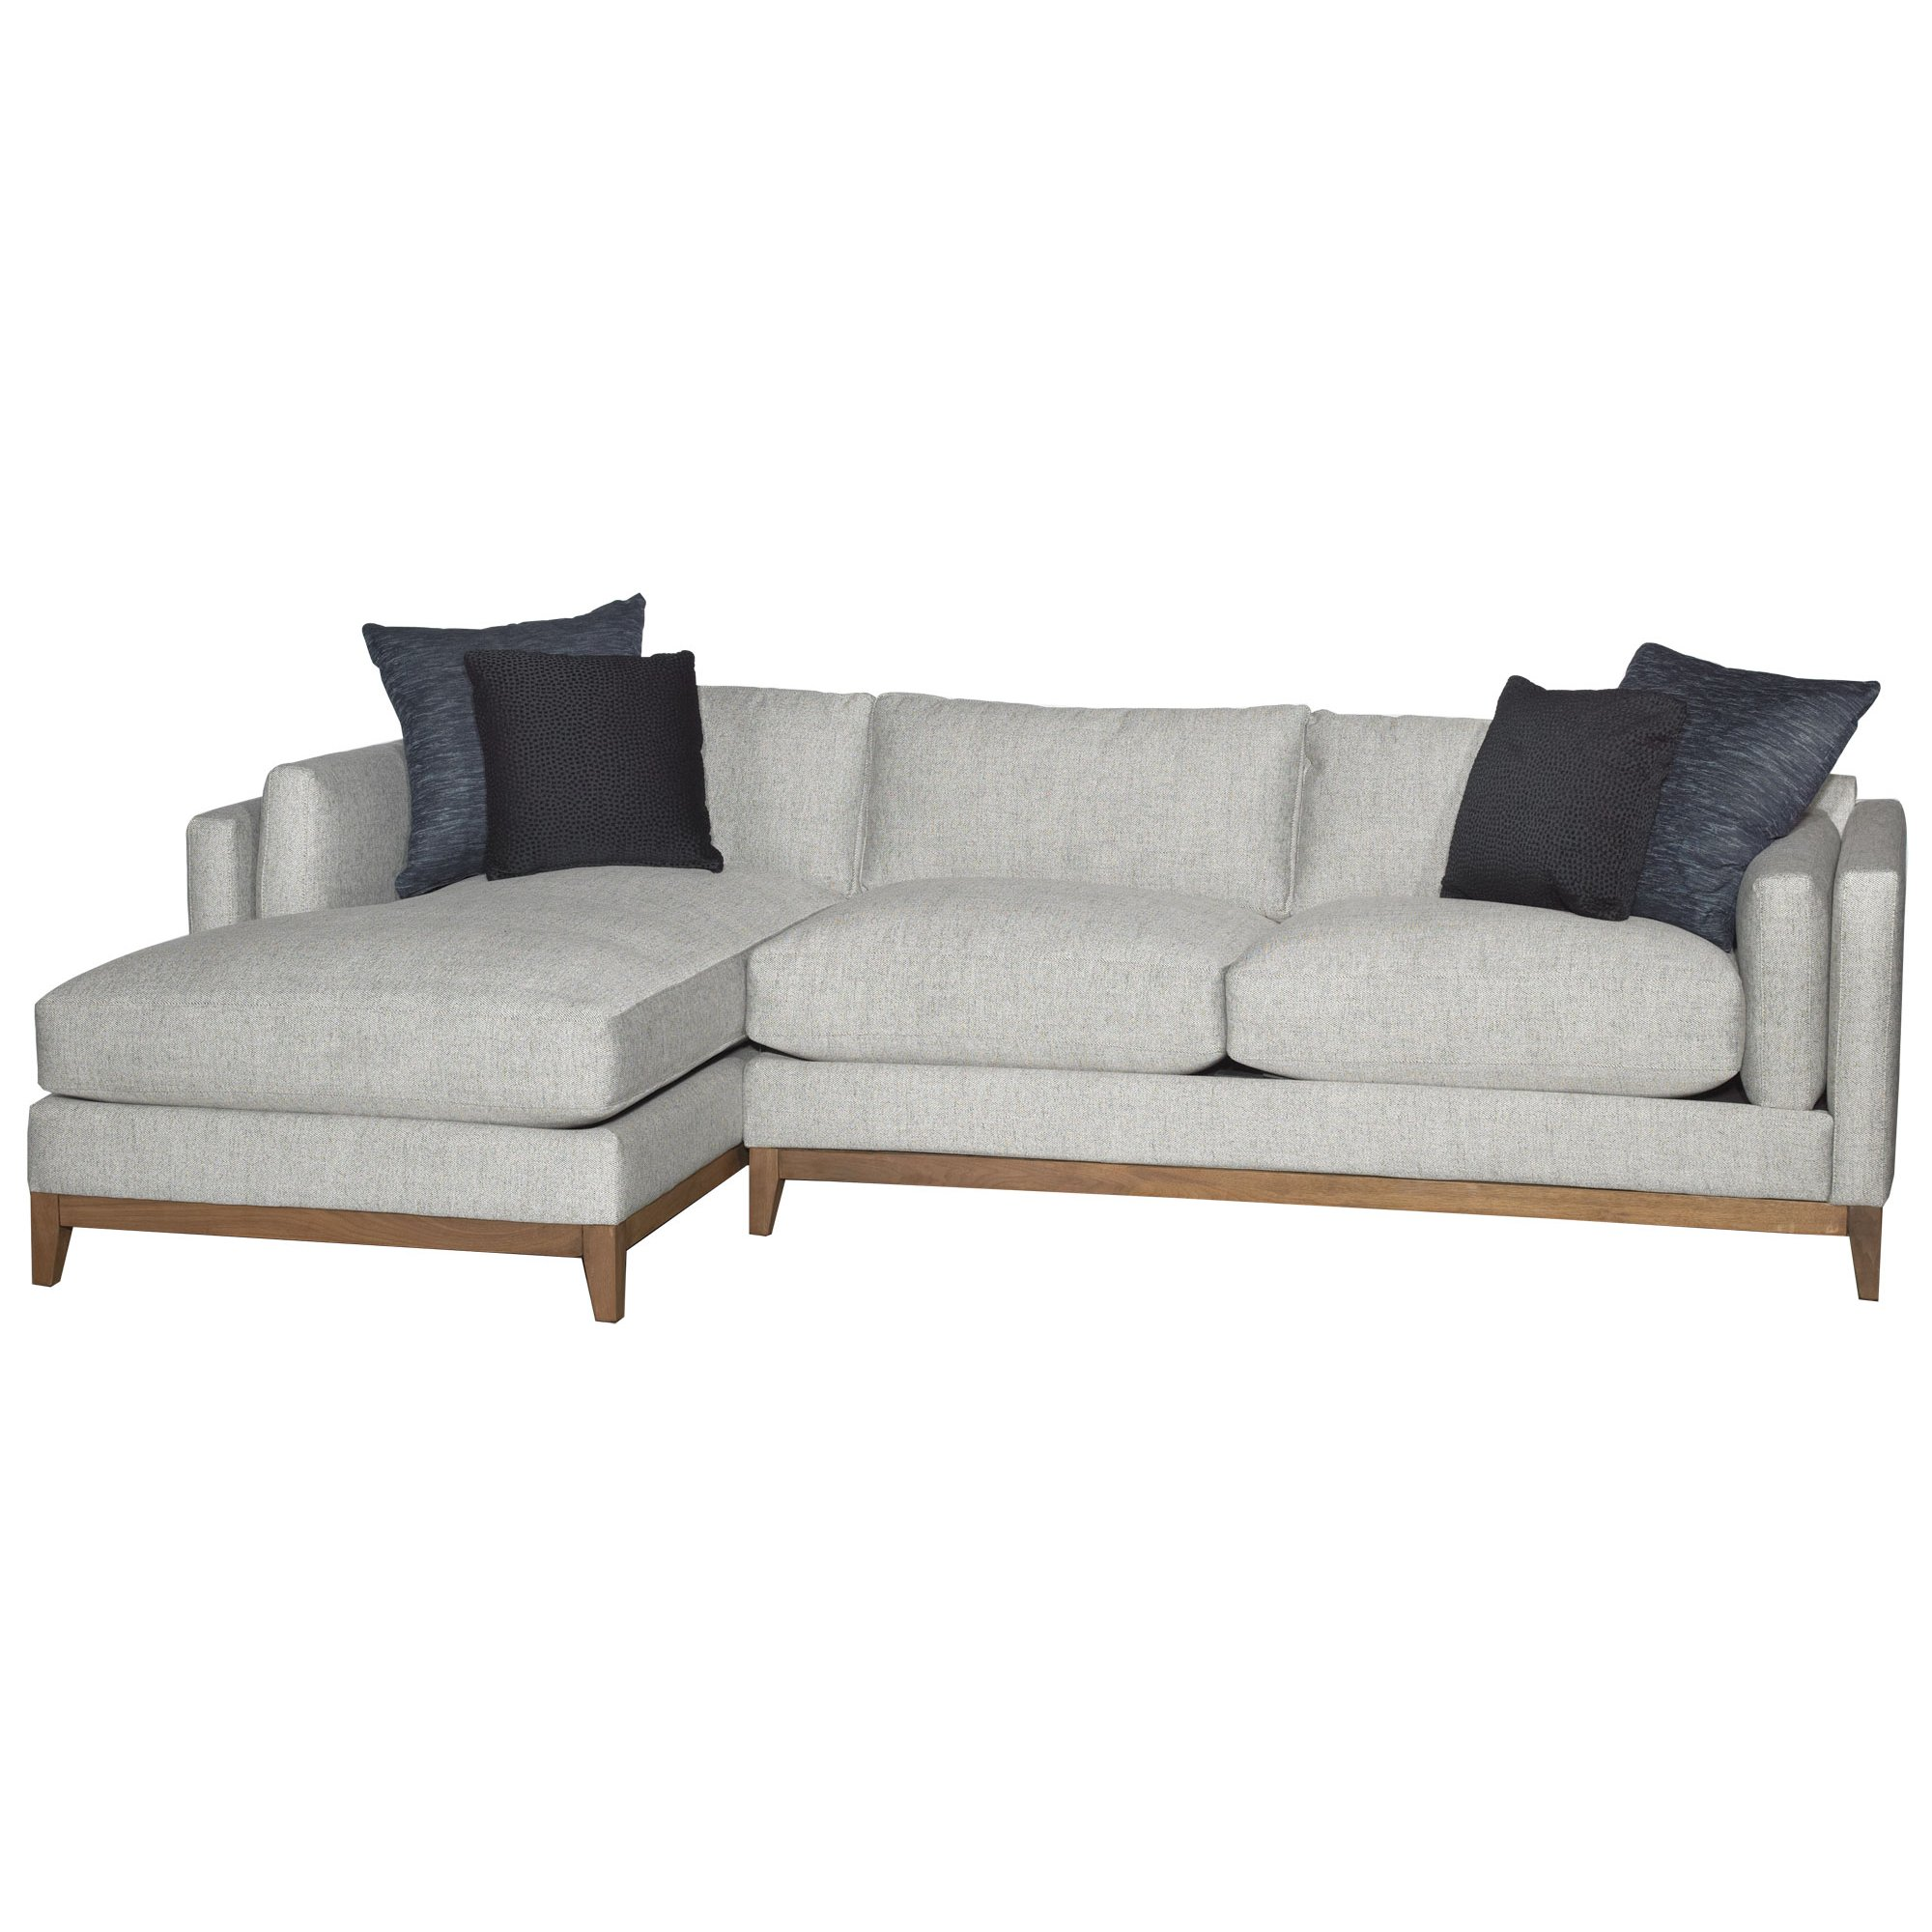 legs century with phylum georgia legsmid brass sofa for chaise mid concept dsc sale picture furniture stunning modern